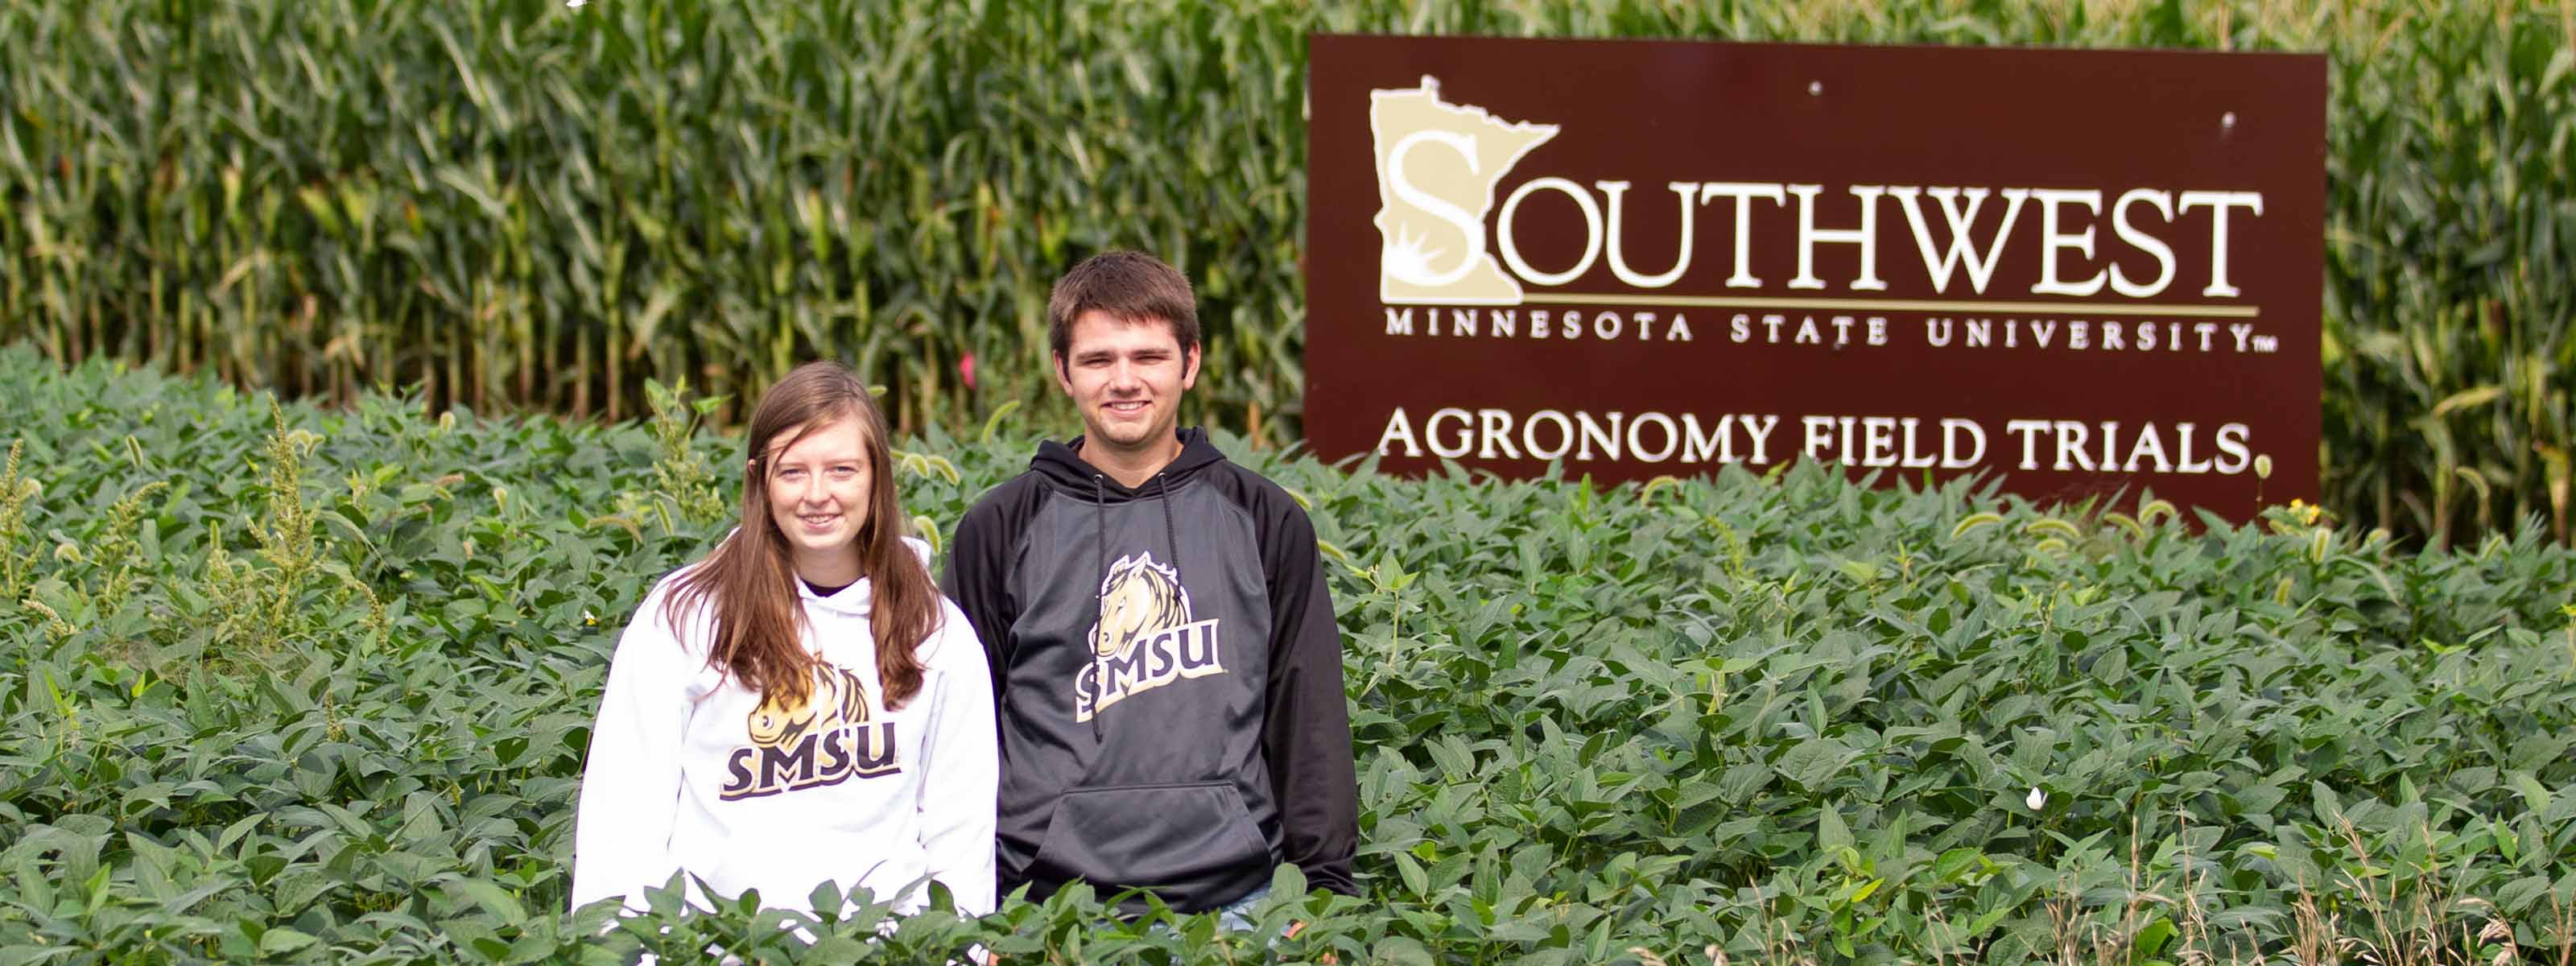 Study Agriculture At SMSU!